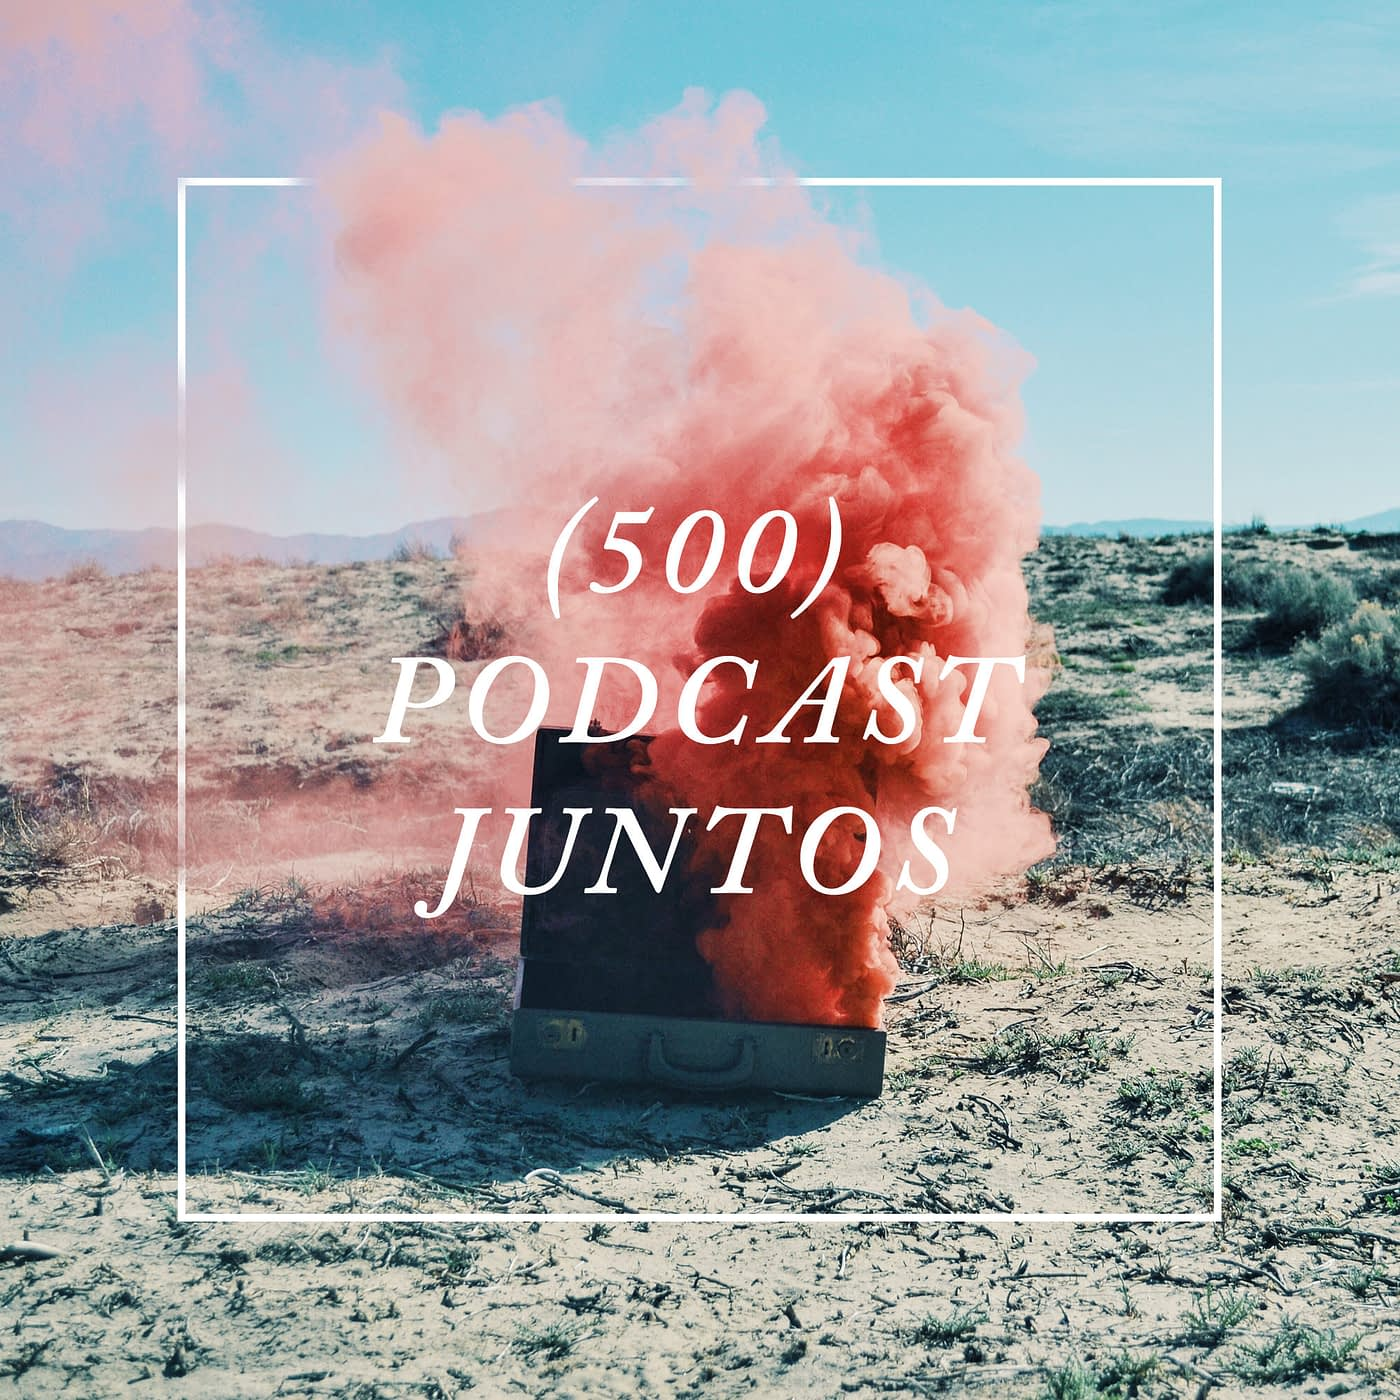 500podcastjuntos